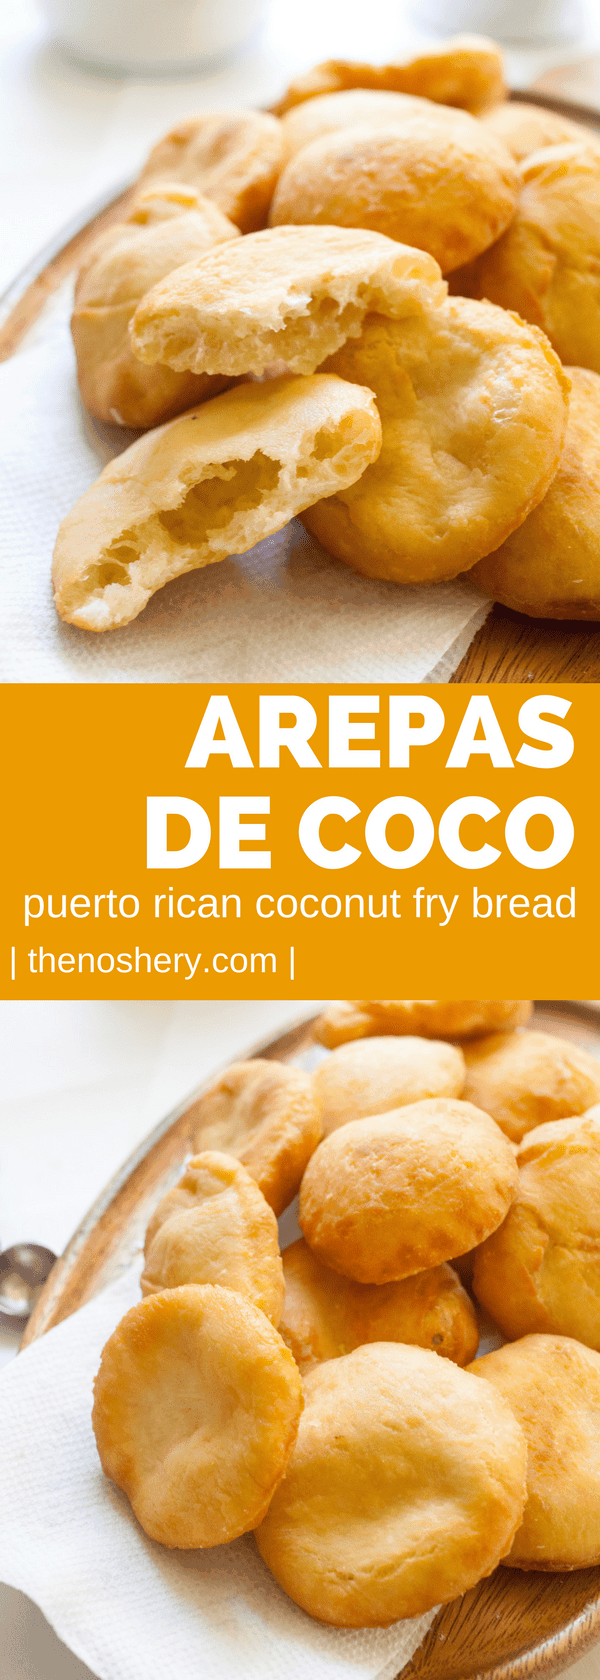 Arepas de Coco (Coconut Fry Bread) is one of my favorite street foods in Puerto Rico. This fry bread is light on the inside and crisp on the outside. | The Noshery